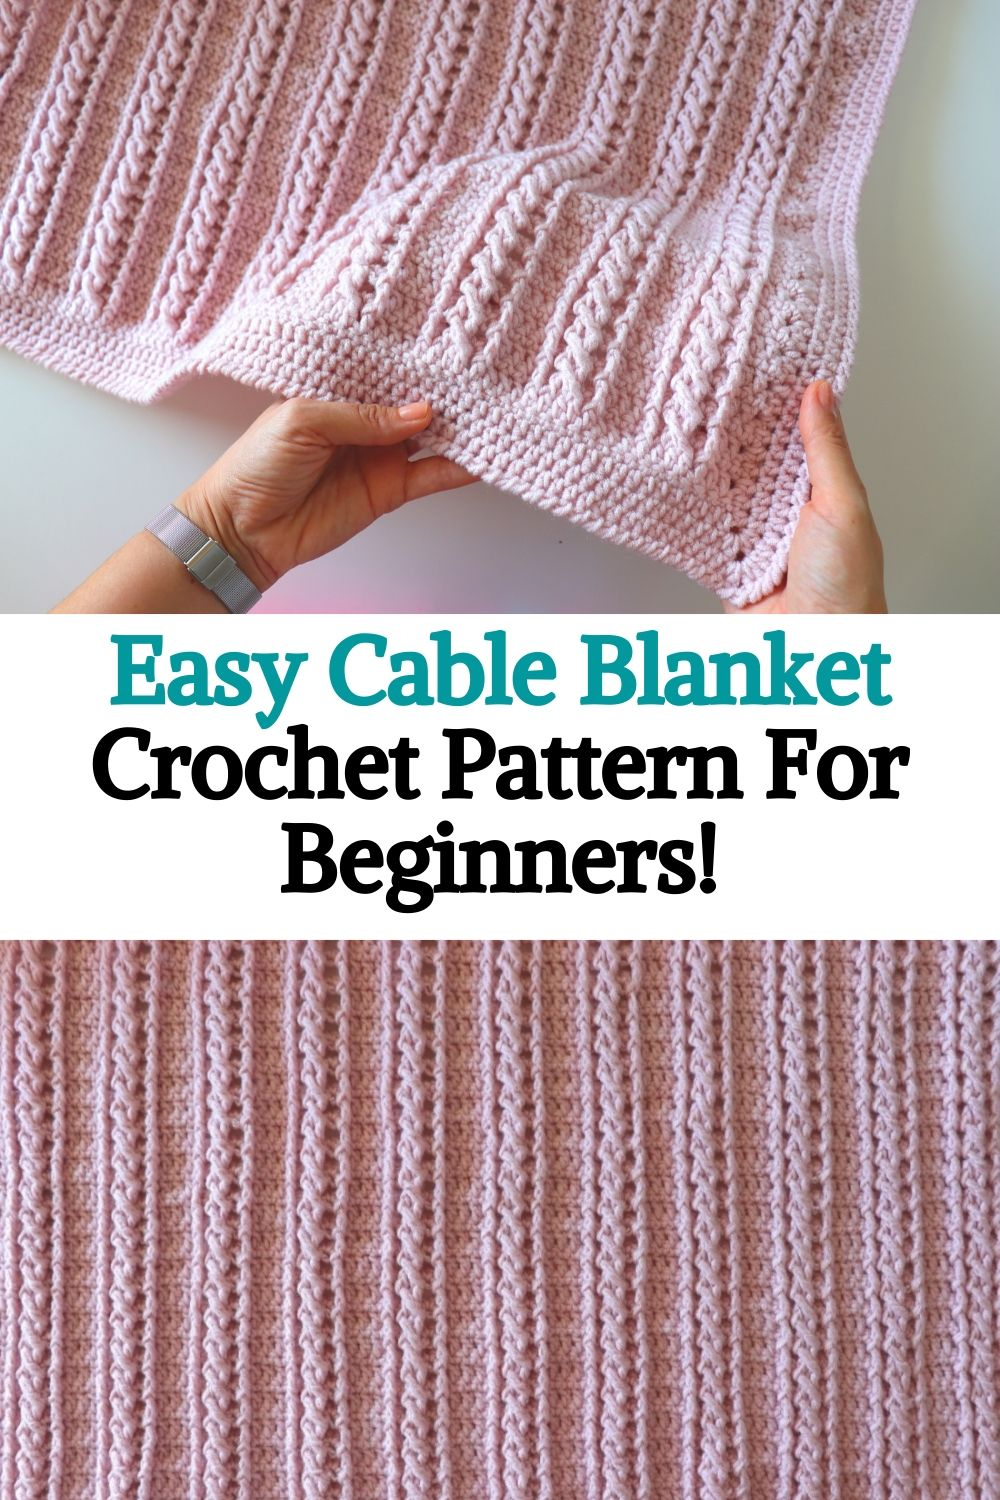 Easy Cable Blanket Crochet Pattern For Beginners!